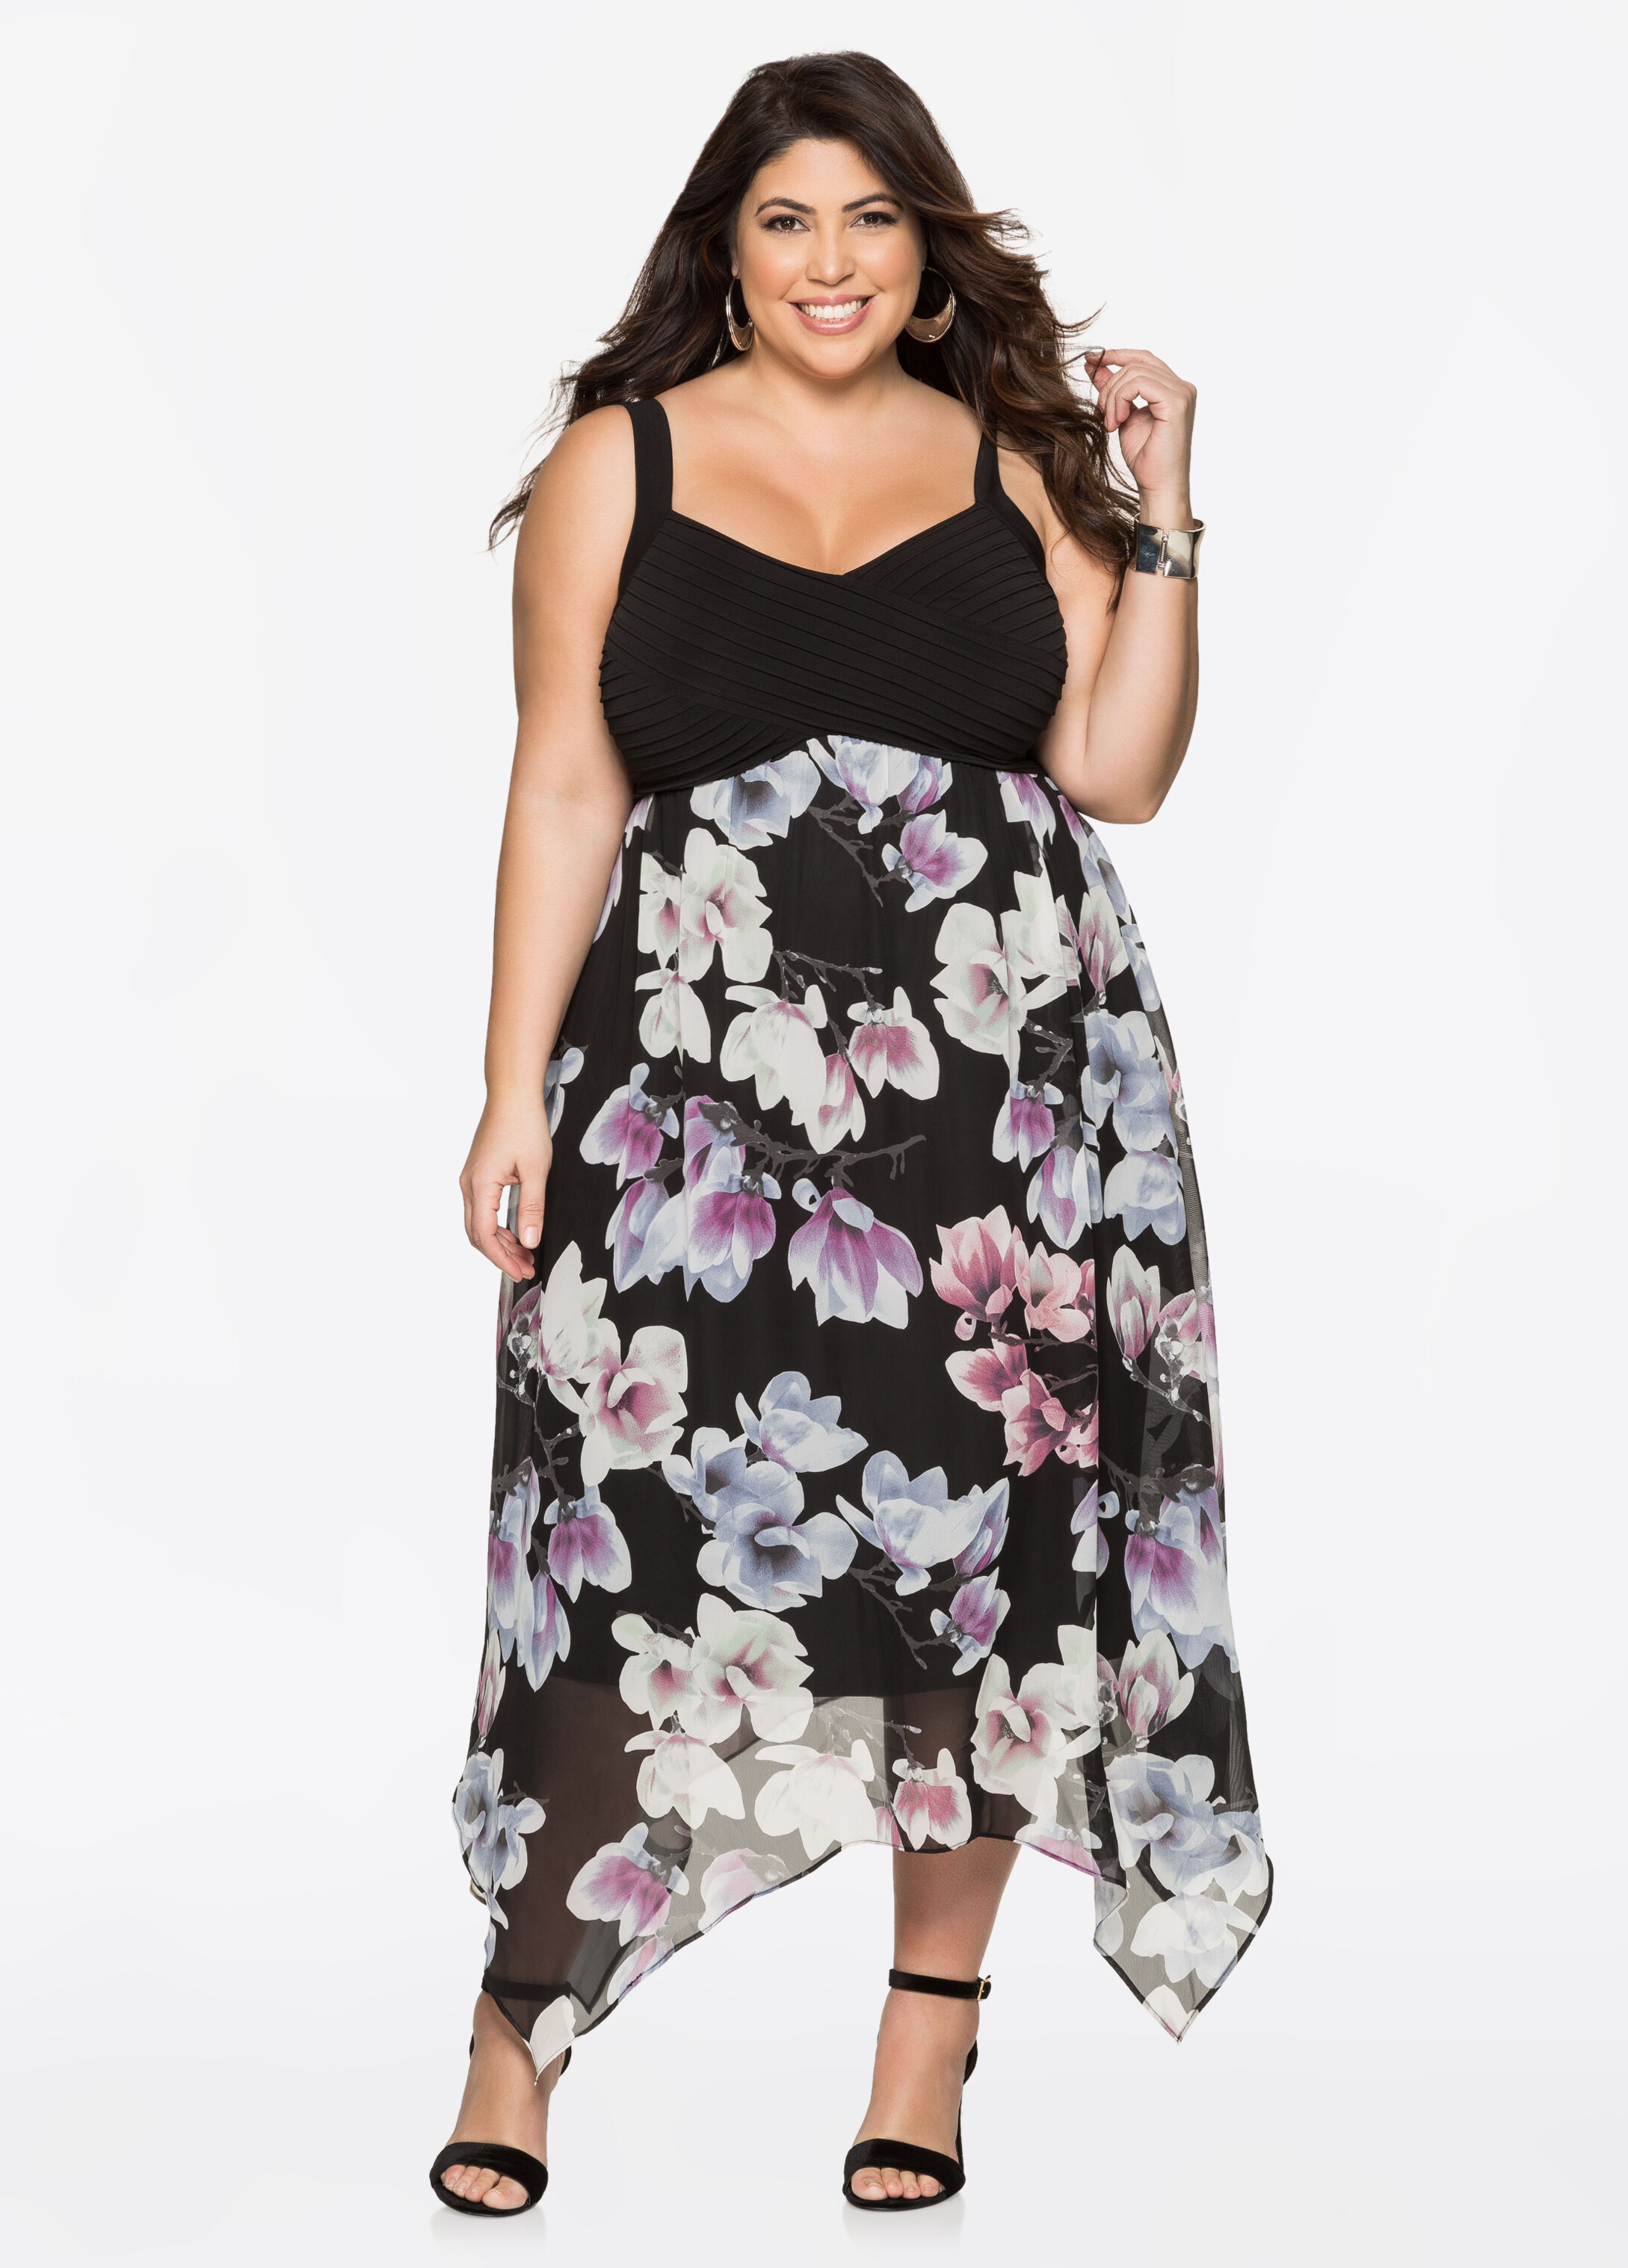 Floral Chiffon Maxi Dresses Black Combo - Clearance